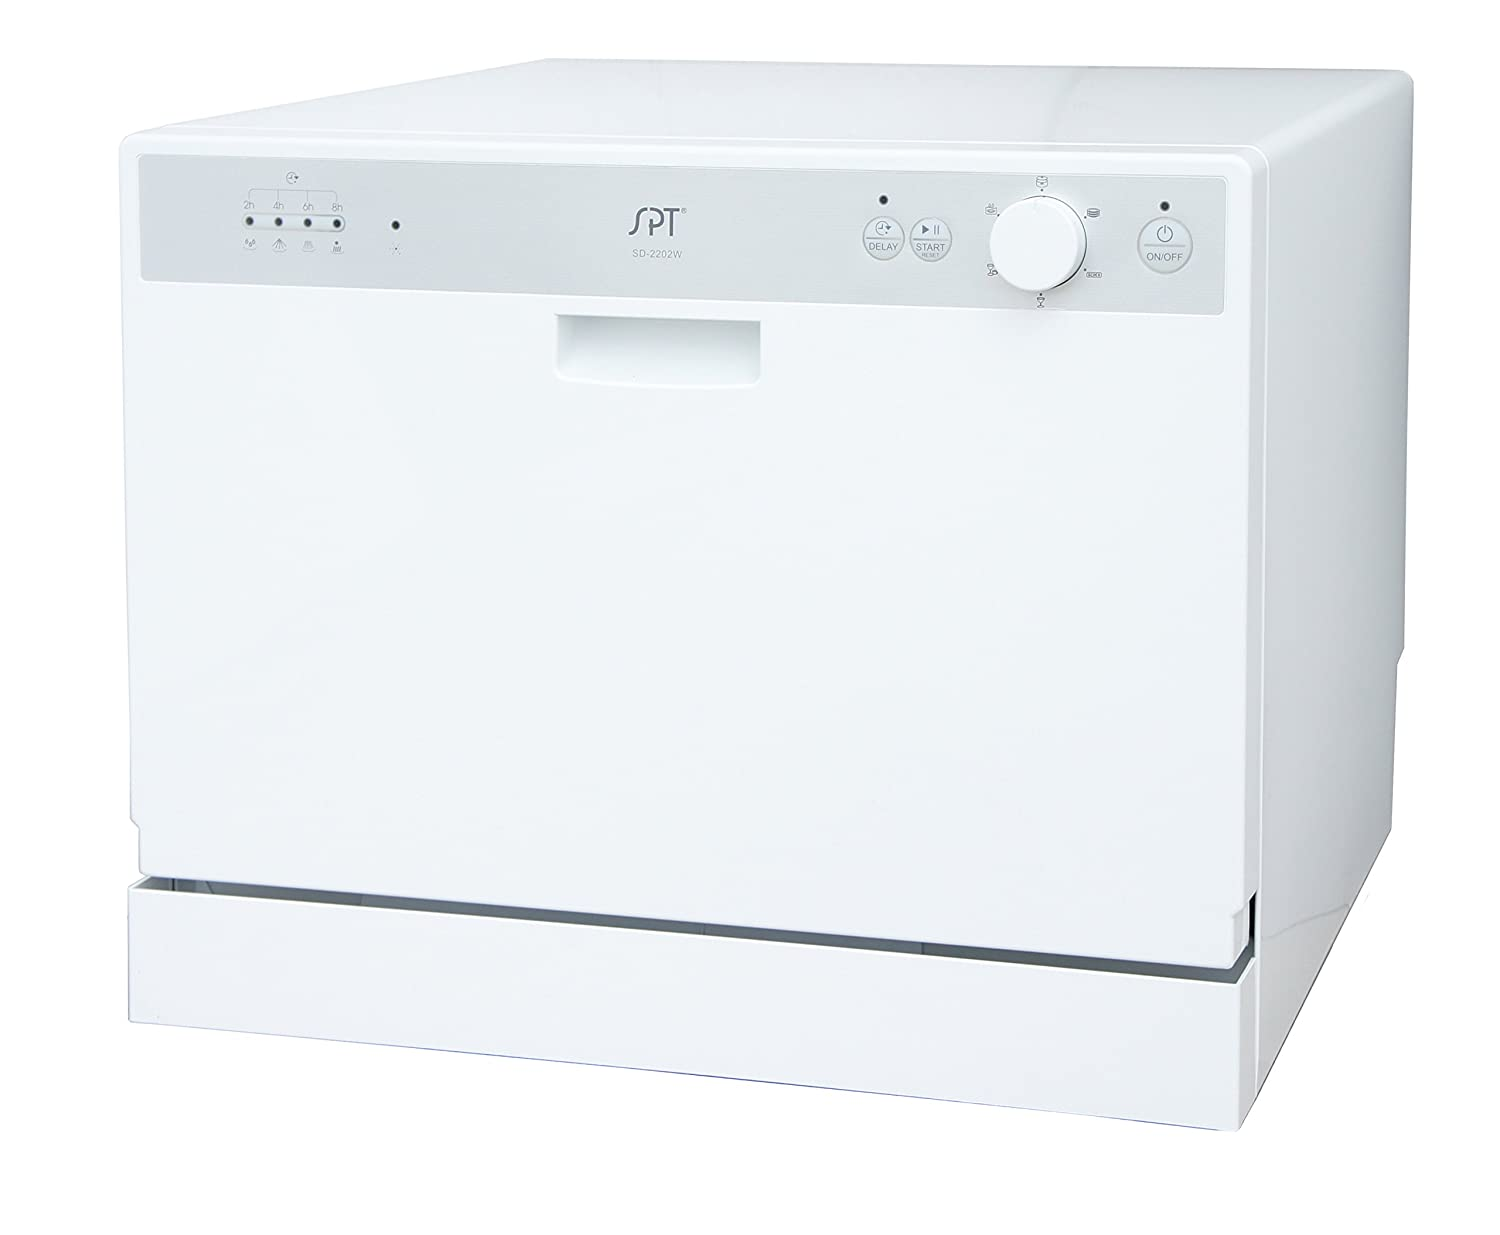 dishwasher on countertop small price spt dishwashers apartment best here check portable white wheels sd style lifestyle